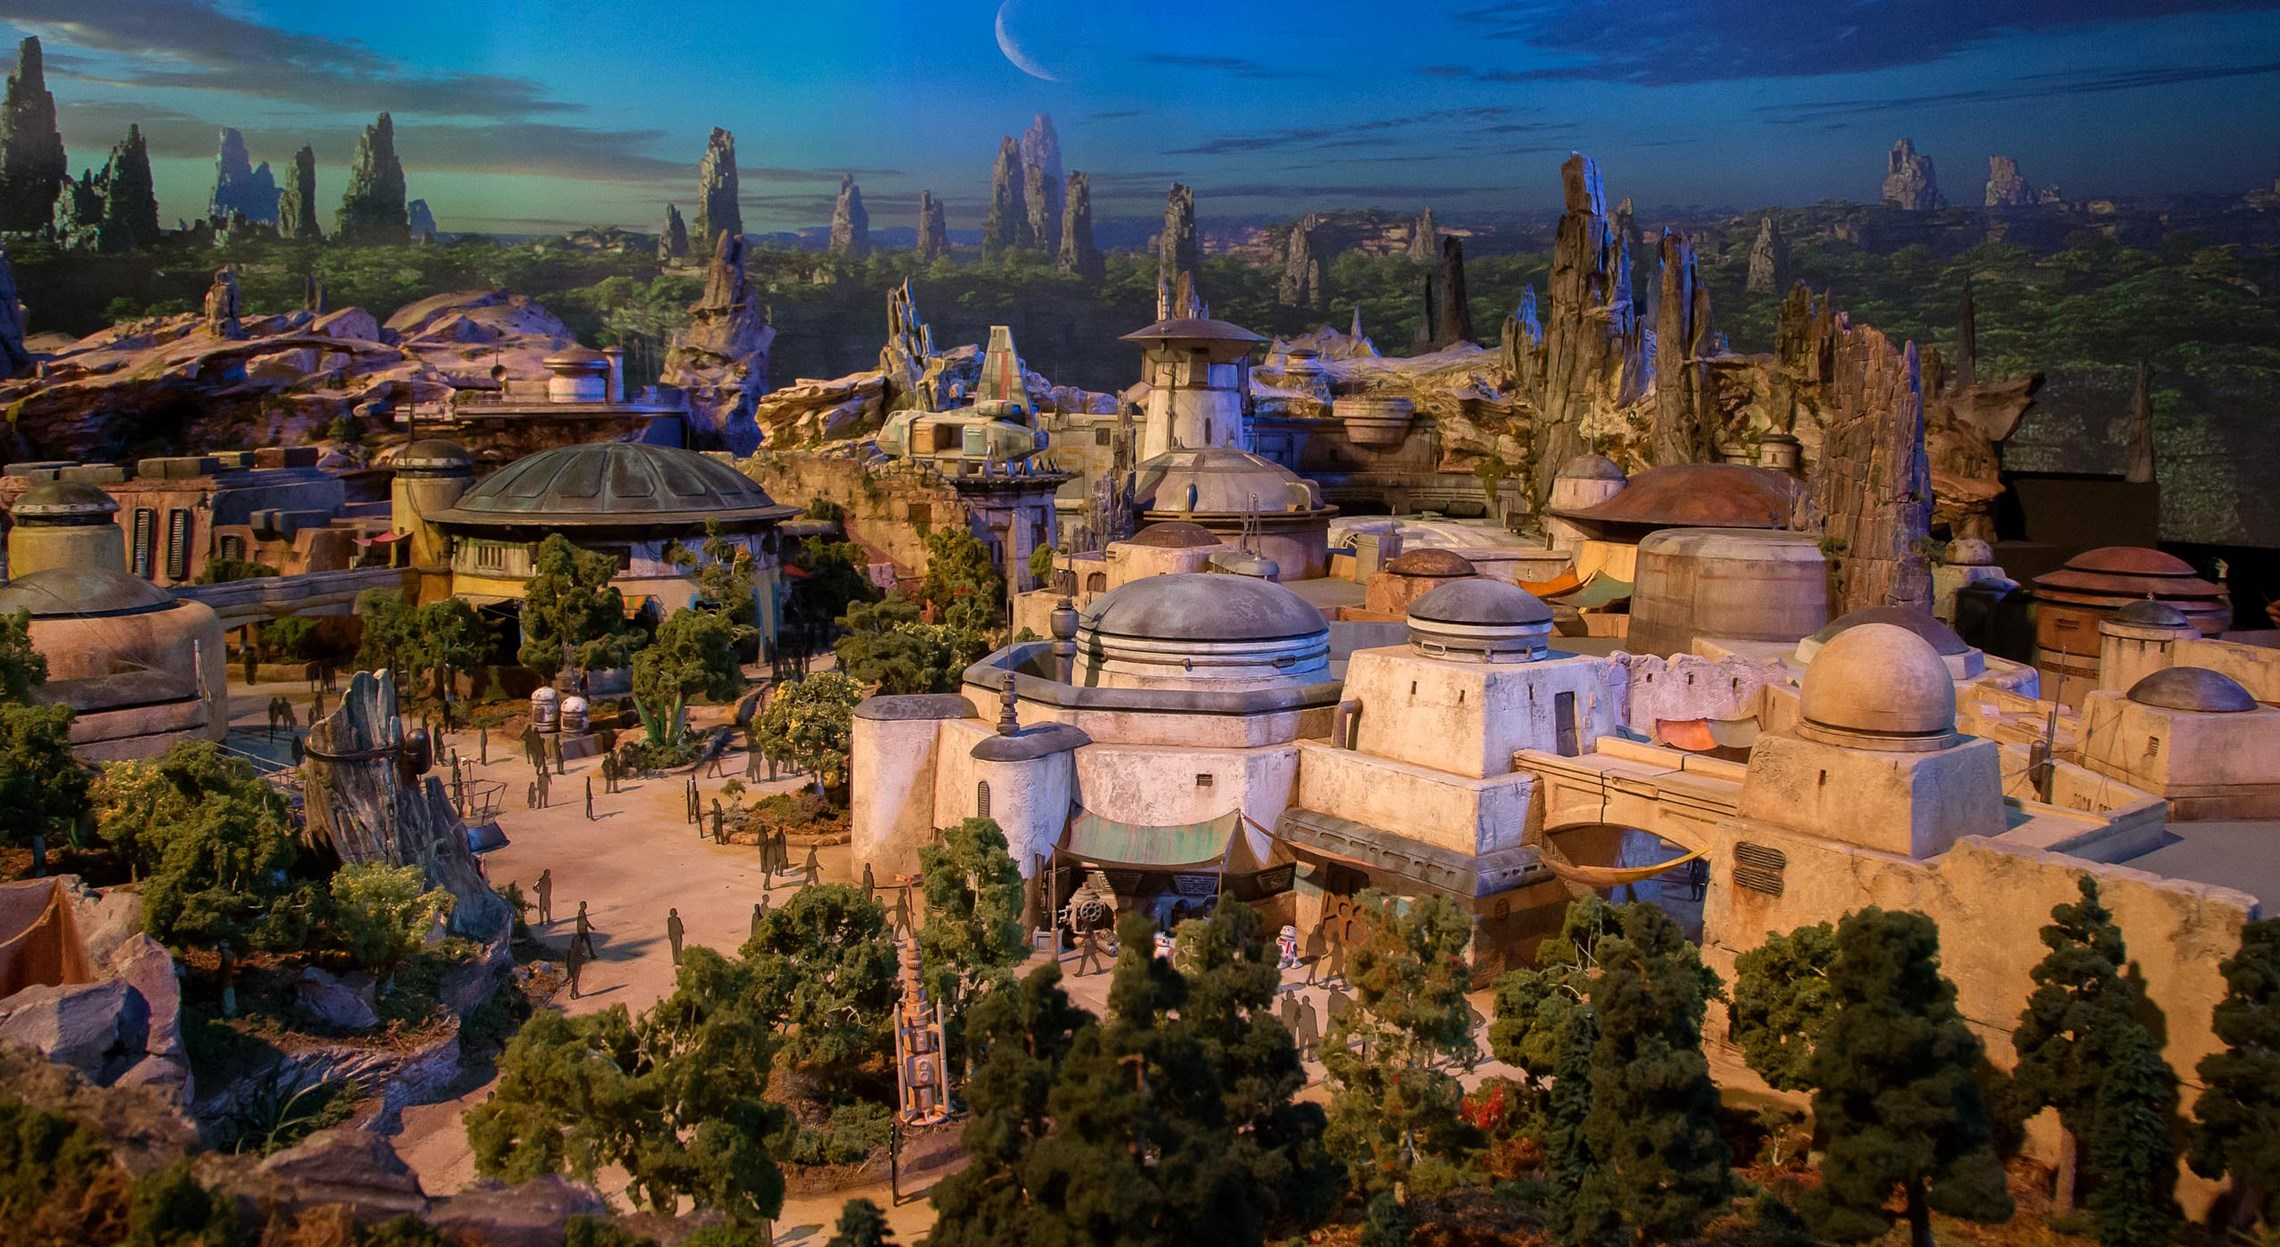 Star Wars Land model unveiled at D23 Expo